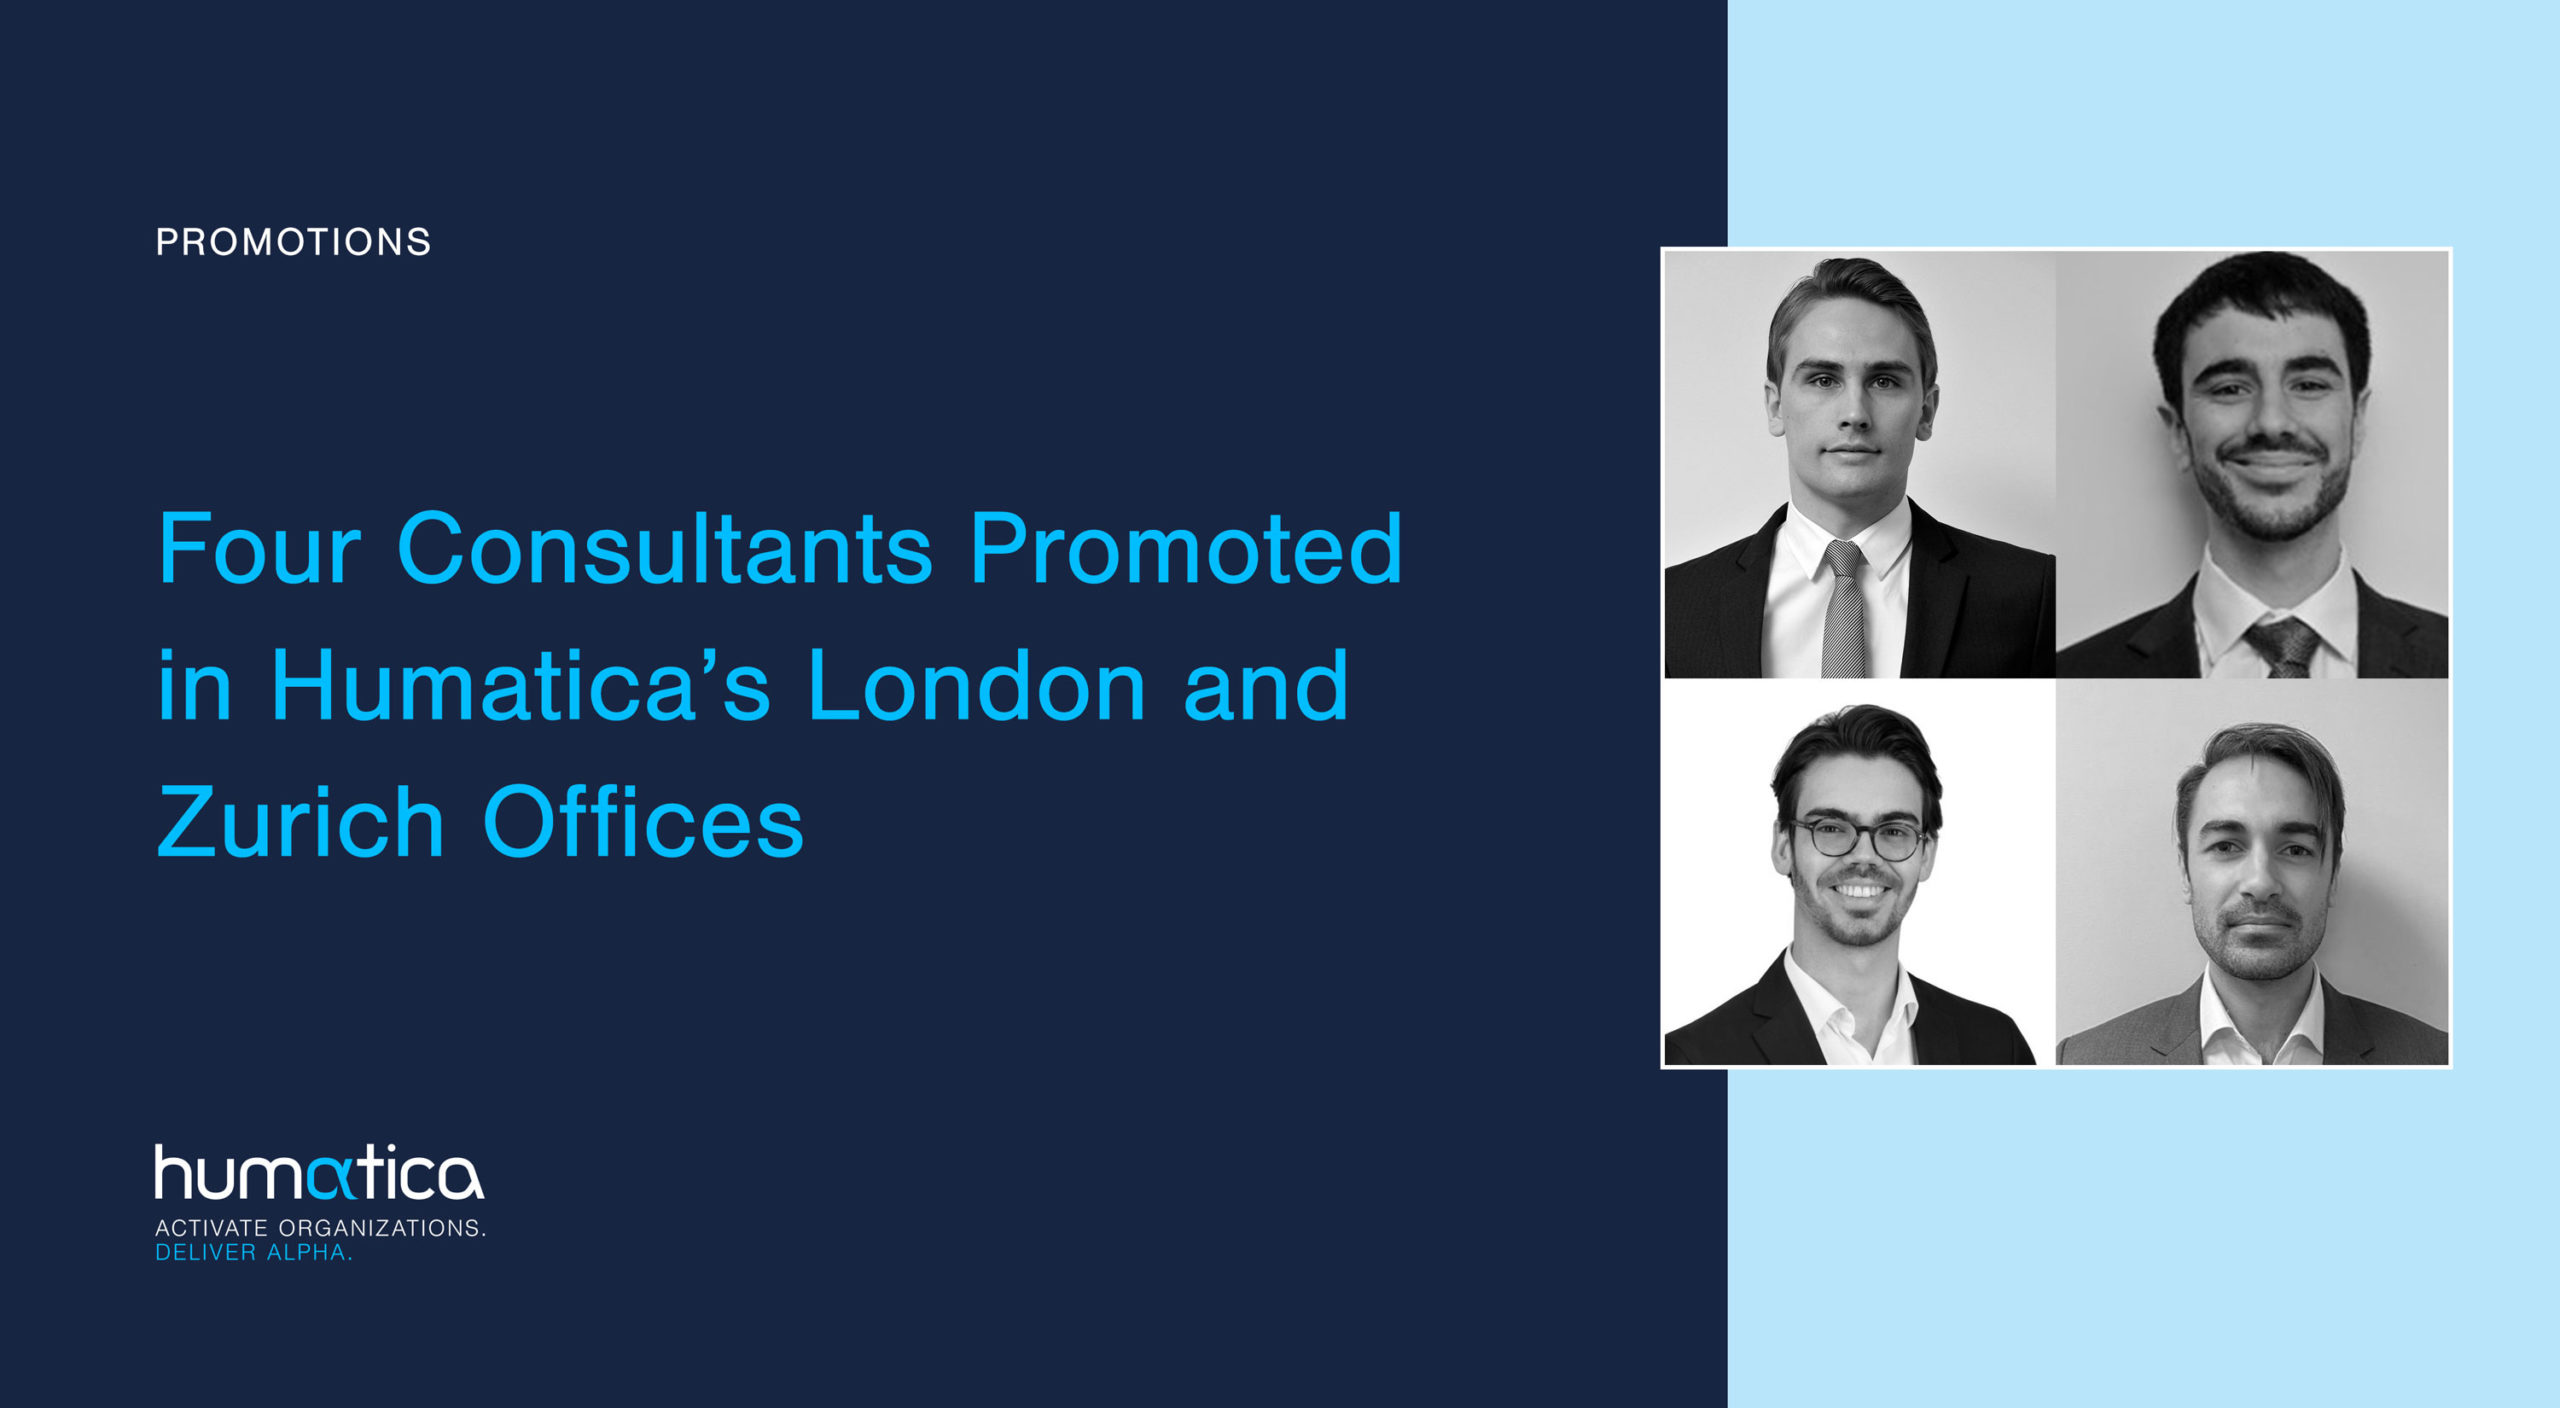 Four Consultants Promoted in Humatica's London and Zurich Offices